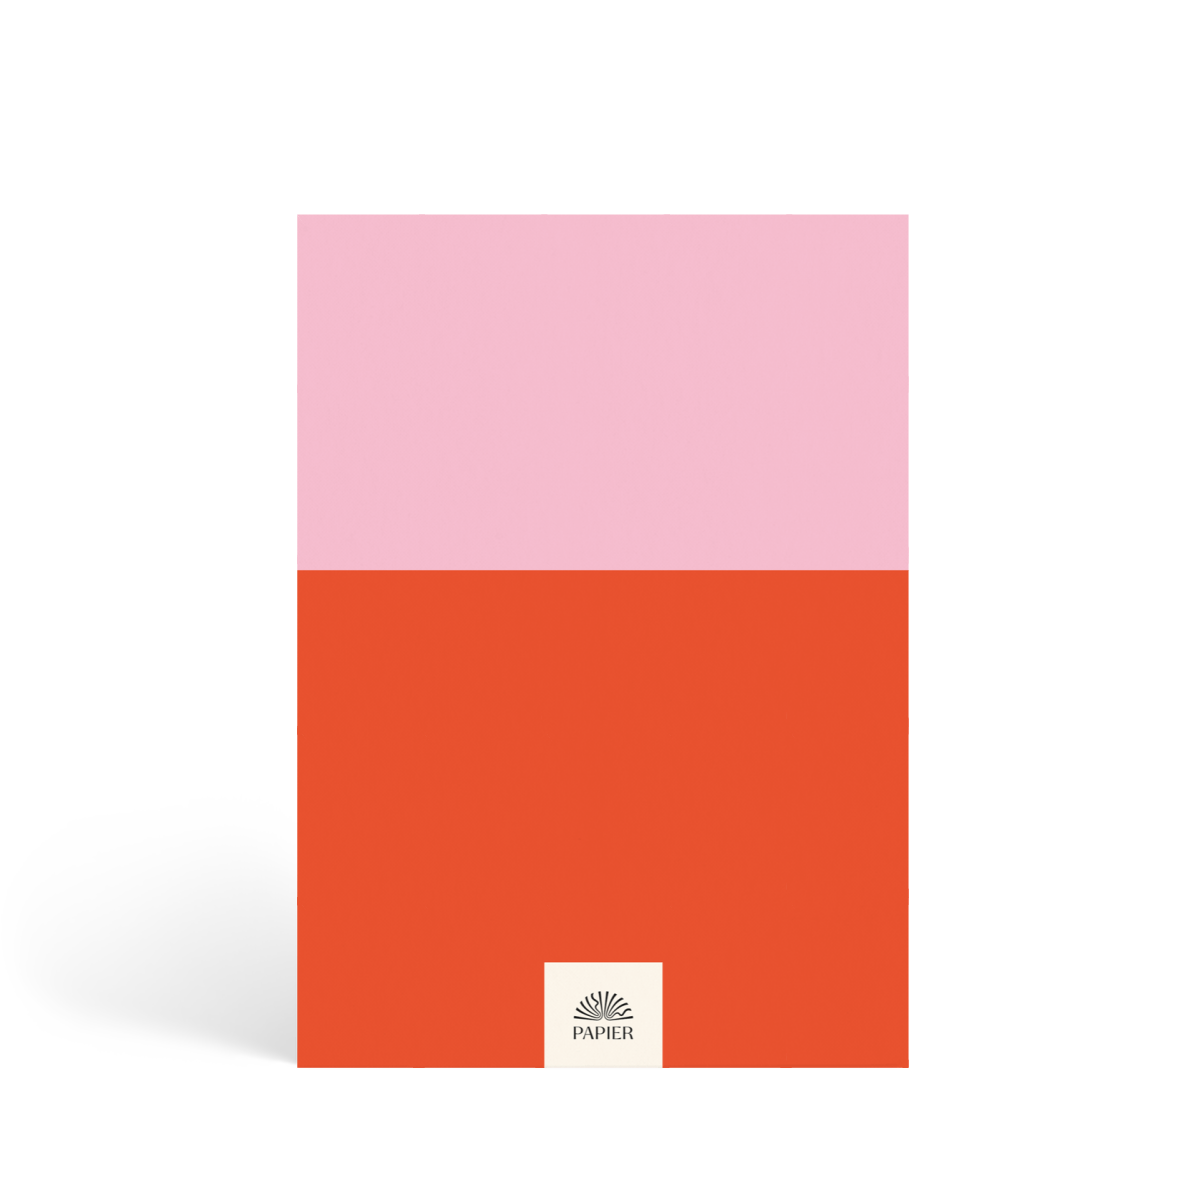 Https%3a%2f%2fwww.papier.com%2fproduct image%2f90179%2f5%2fcolourblock pink red 22552 back 1569936384.png?ixlib=rb 1.1